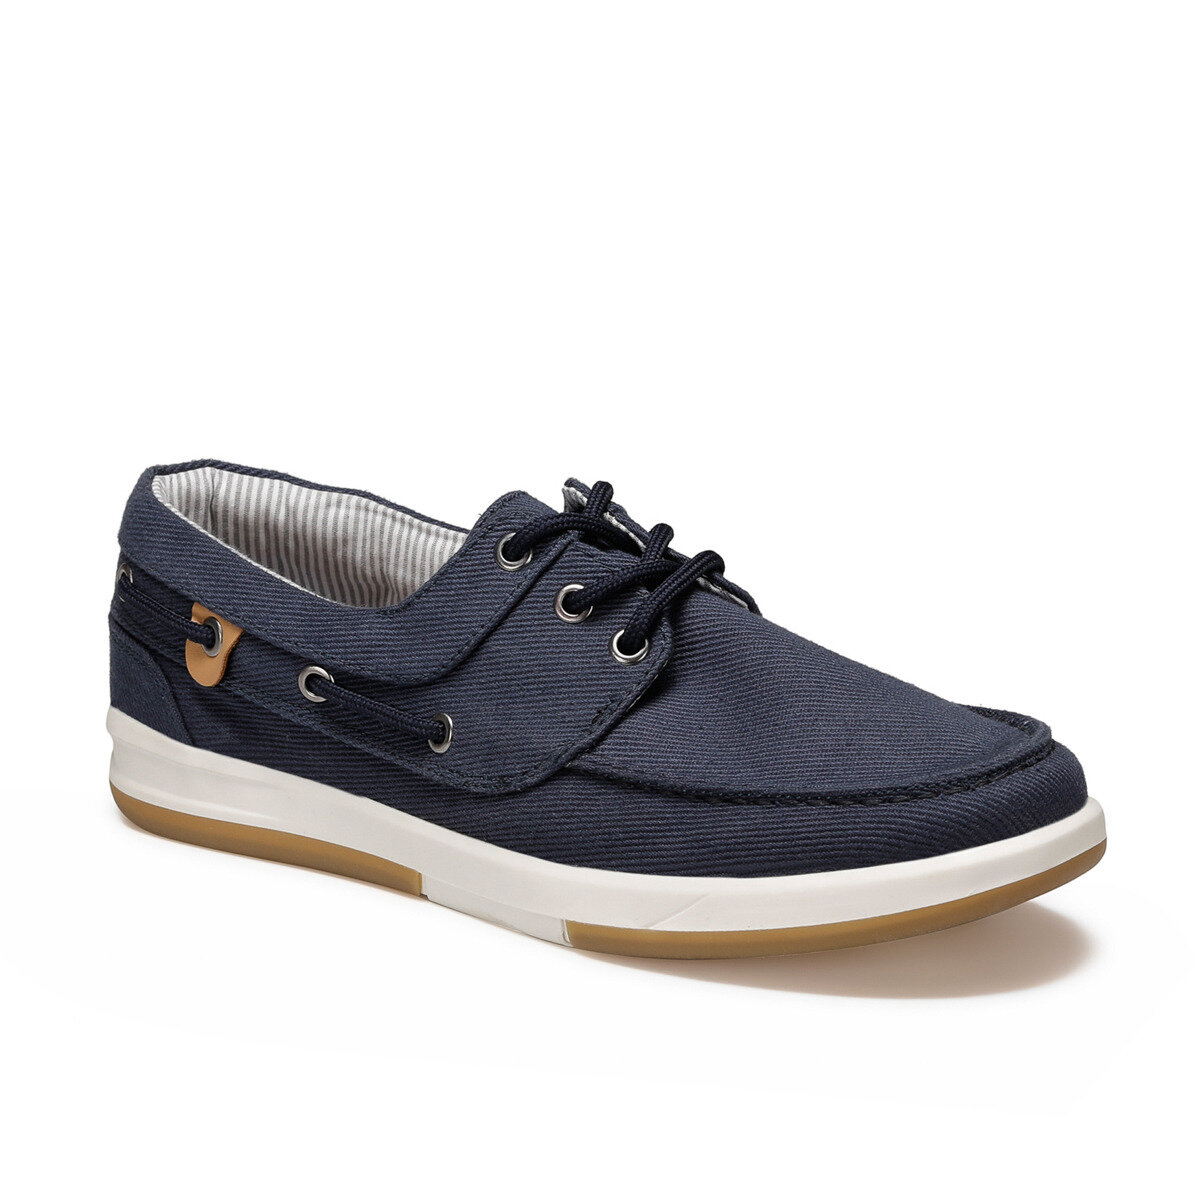 FLO 226535 Navy Blue Men 'S Shoes By Dockers The Gerle